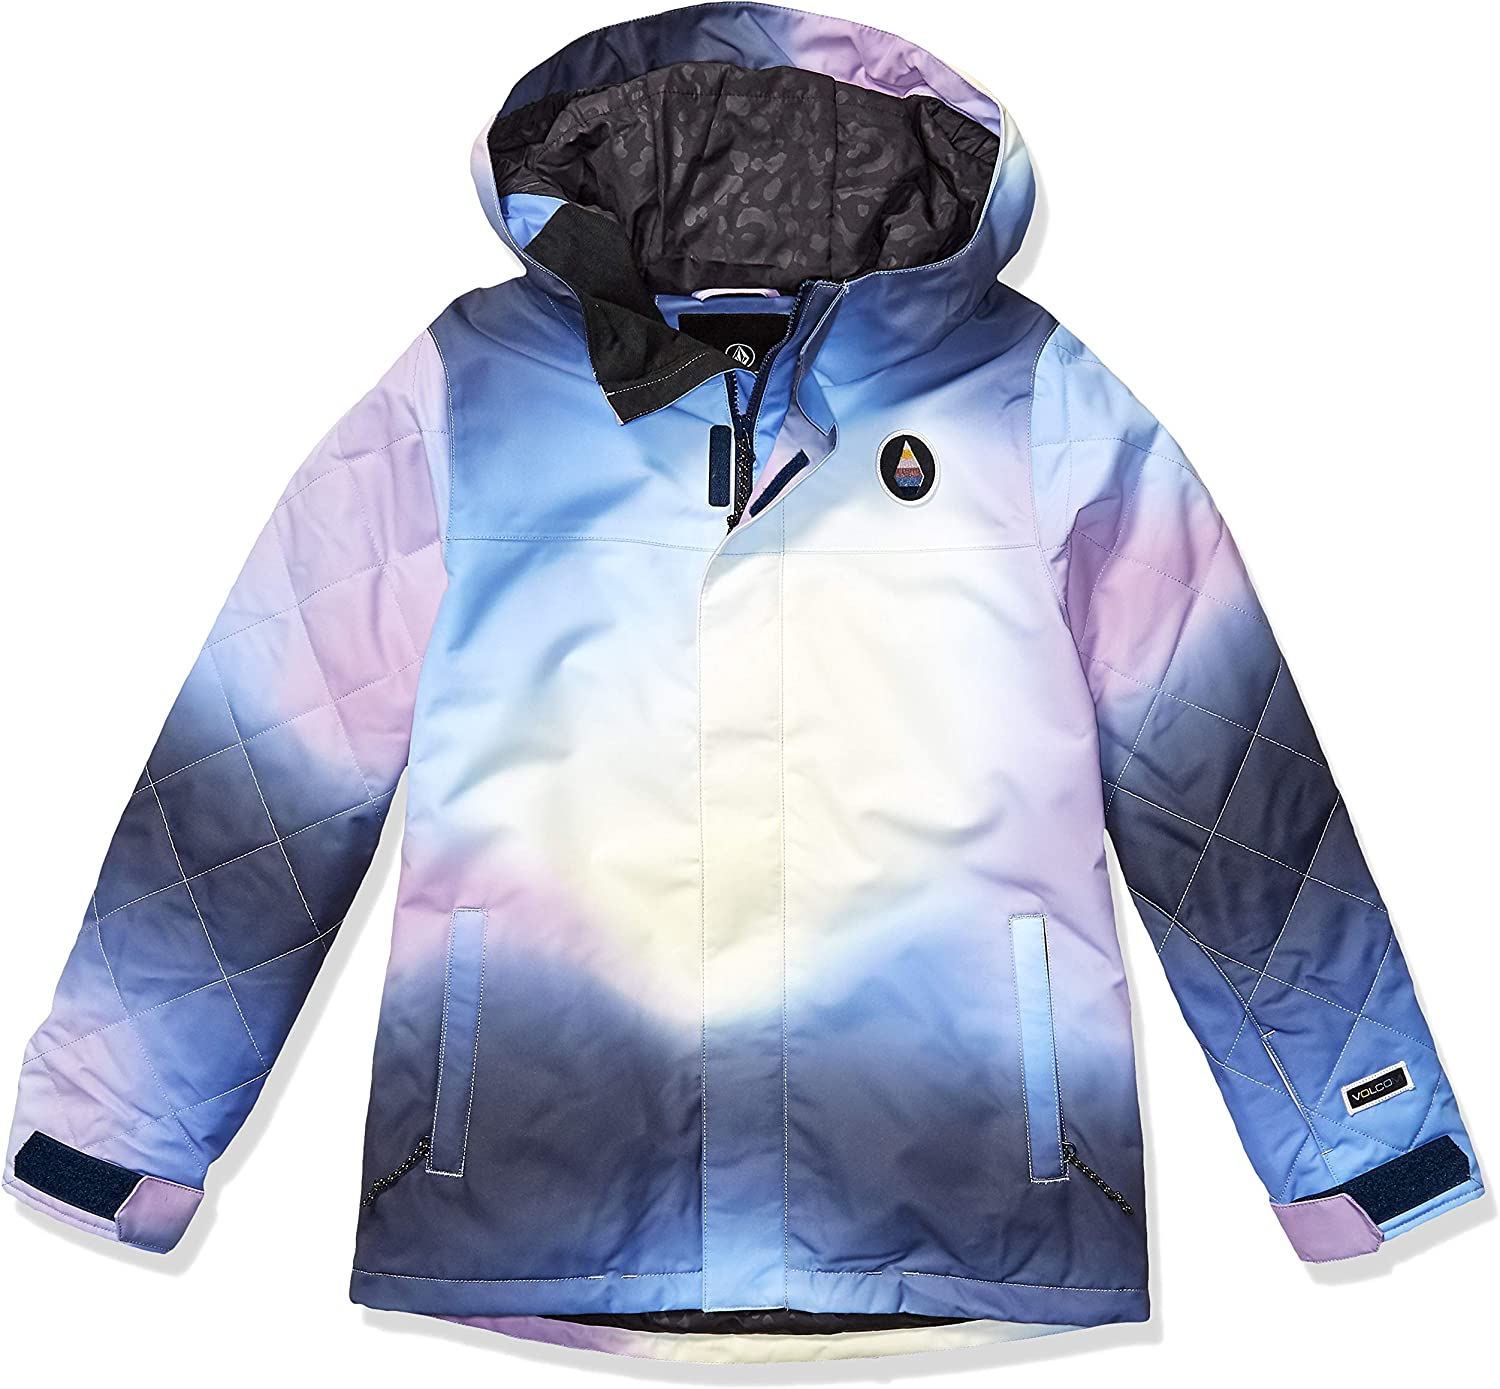 Volcom Big Girls Sassnfras Insulated Snow Jacket